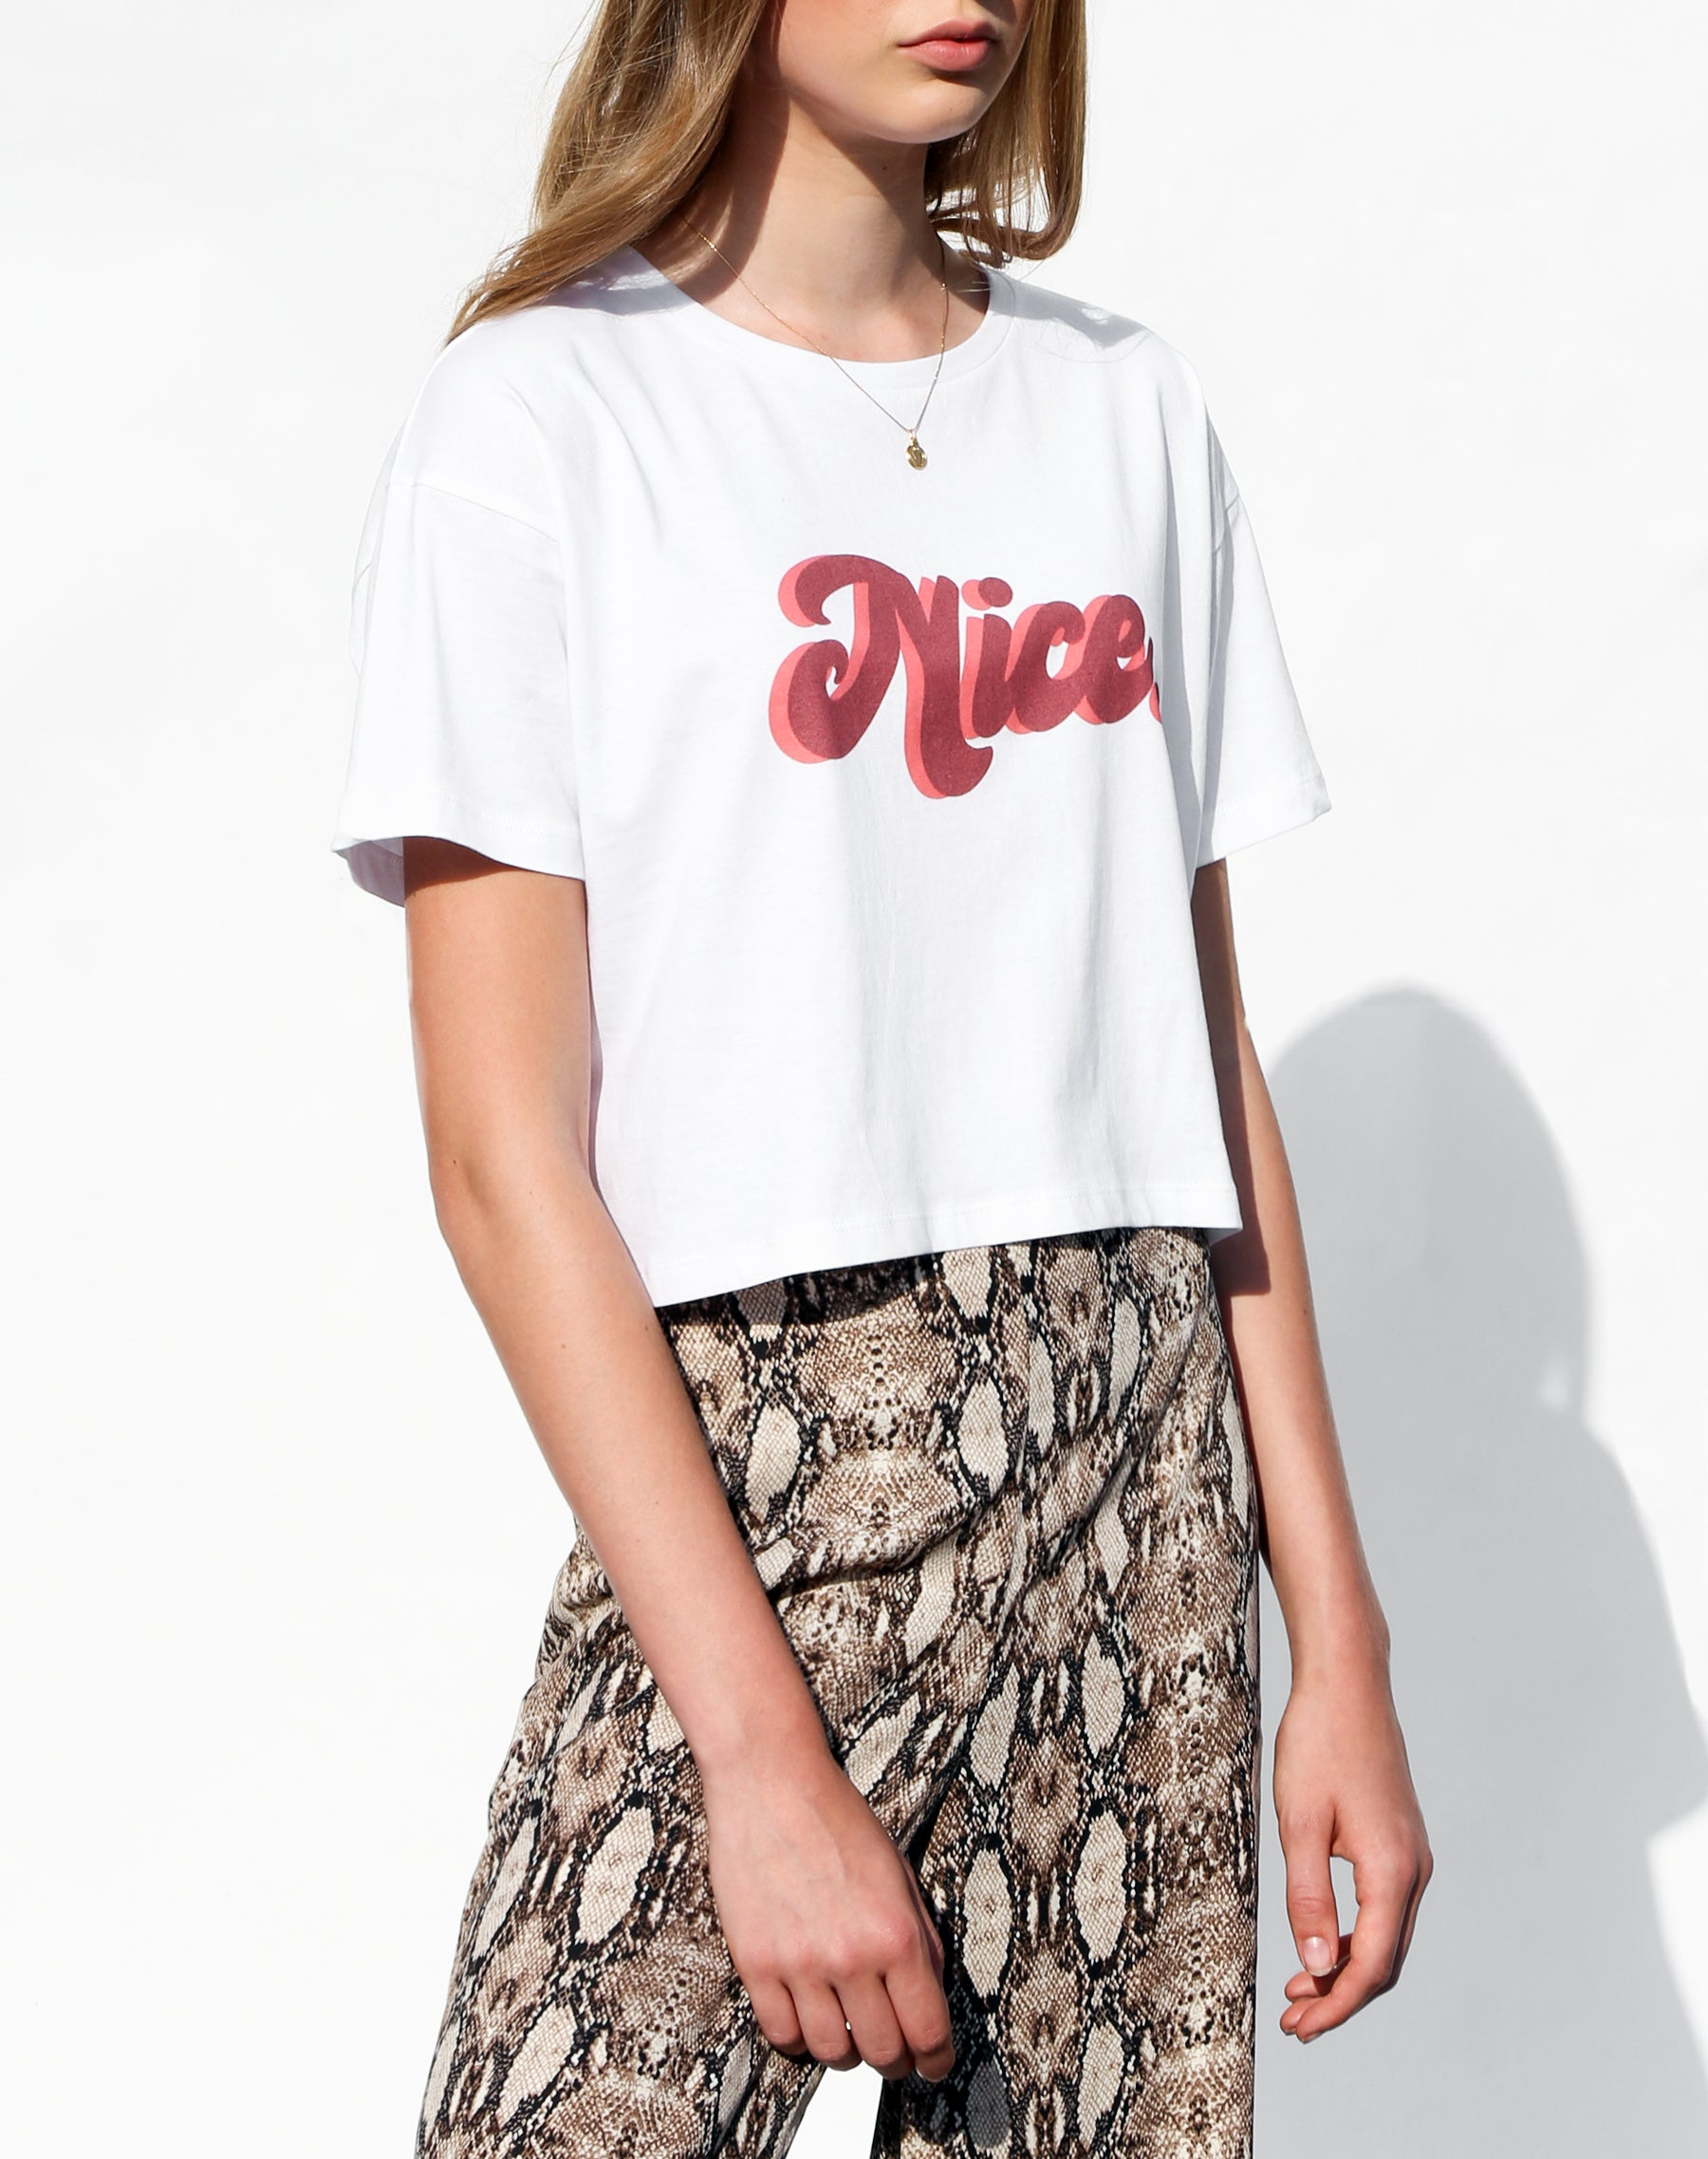 Side photo of the Nice cropped white tee from the Canada Day collection by Brunette the Label.